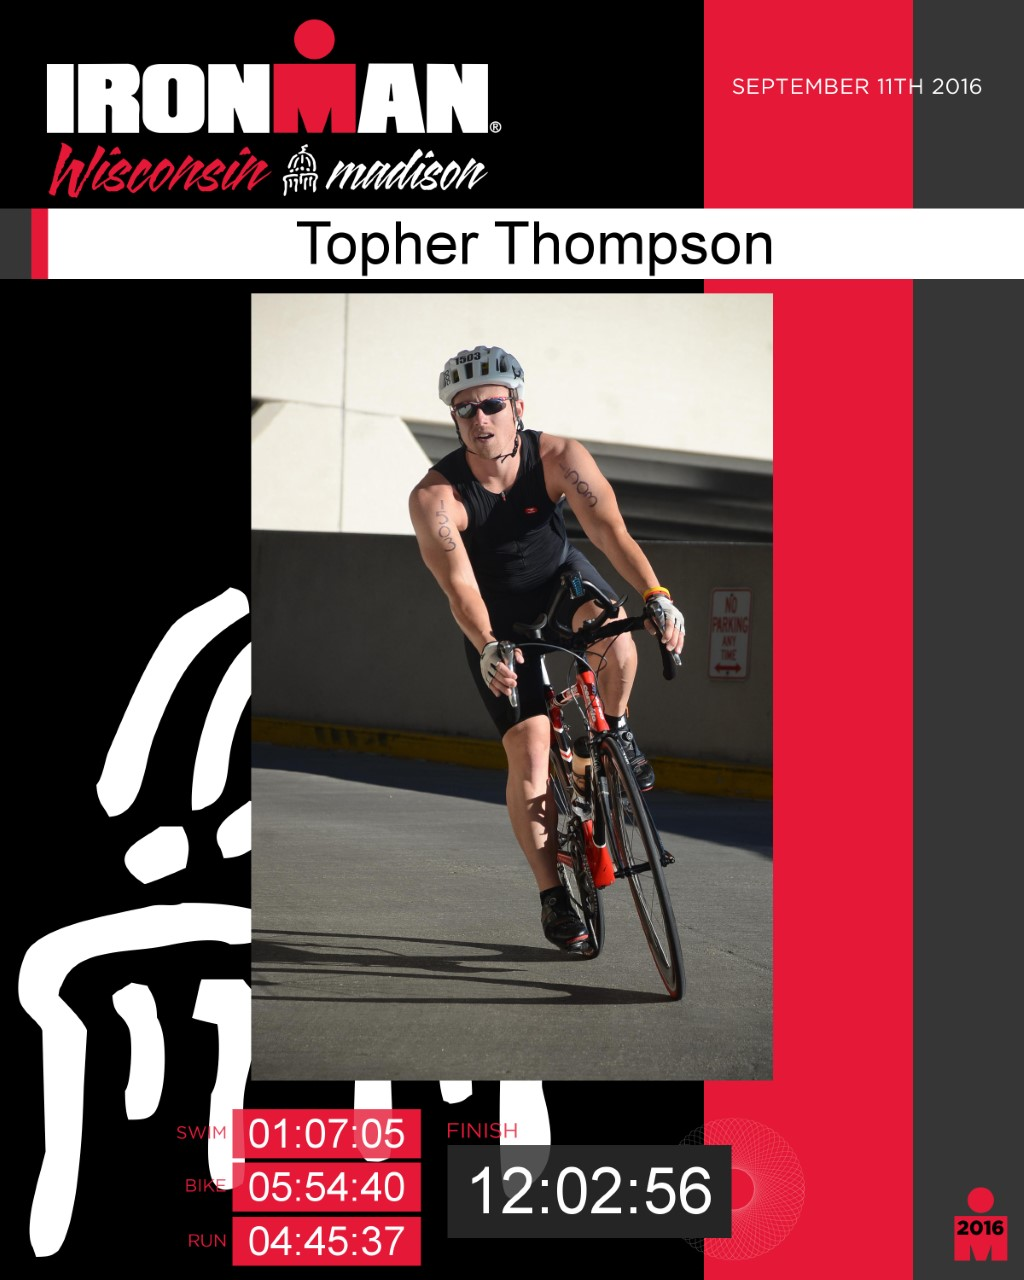 Topher Thompson